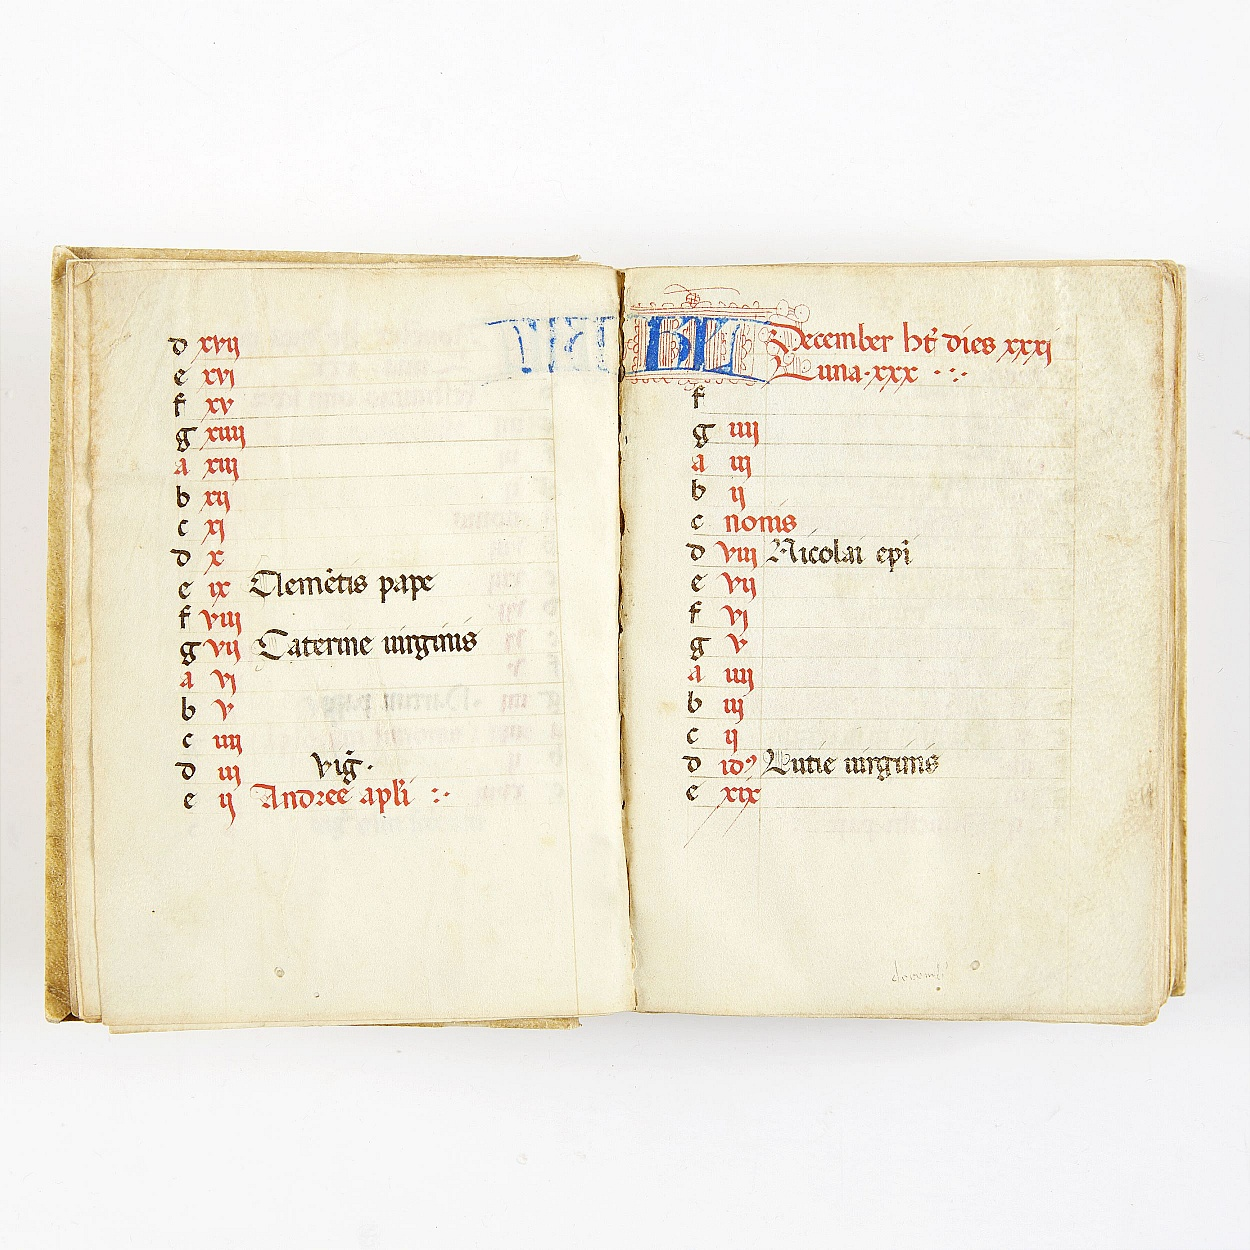 Book of Hours 15th century not complete